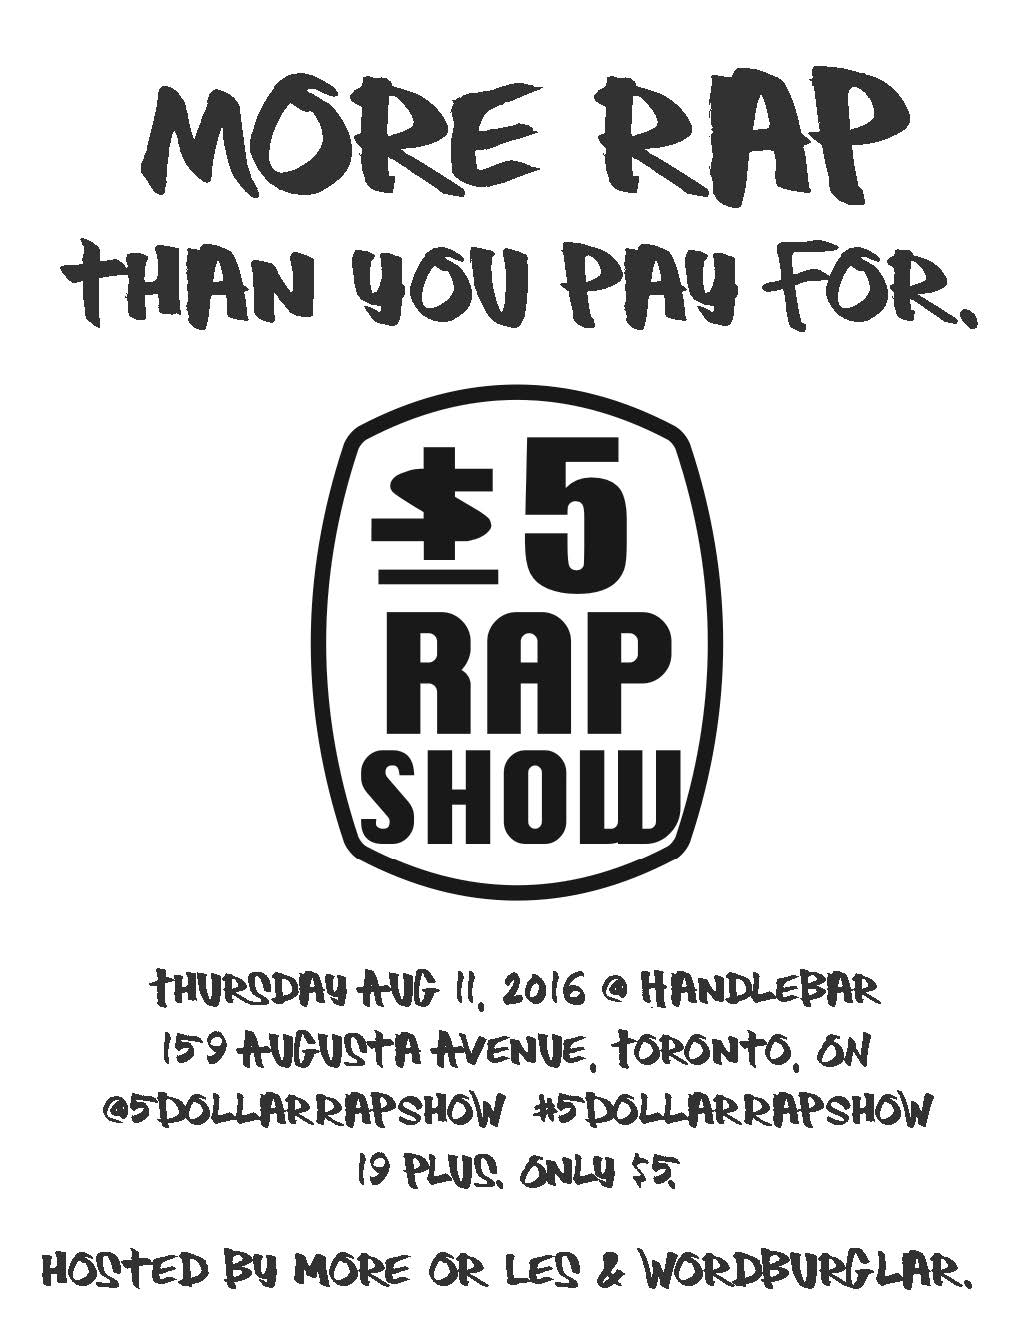 more rap than you pay for1 5 Dollar Rap Show ad